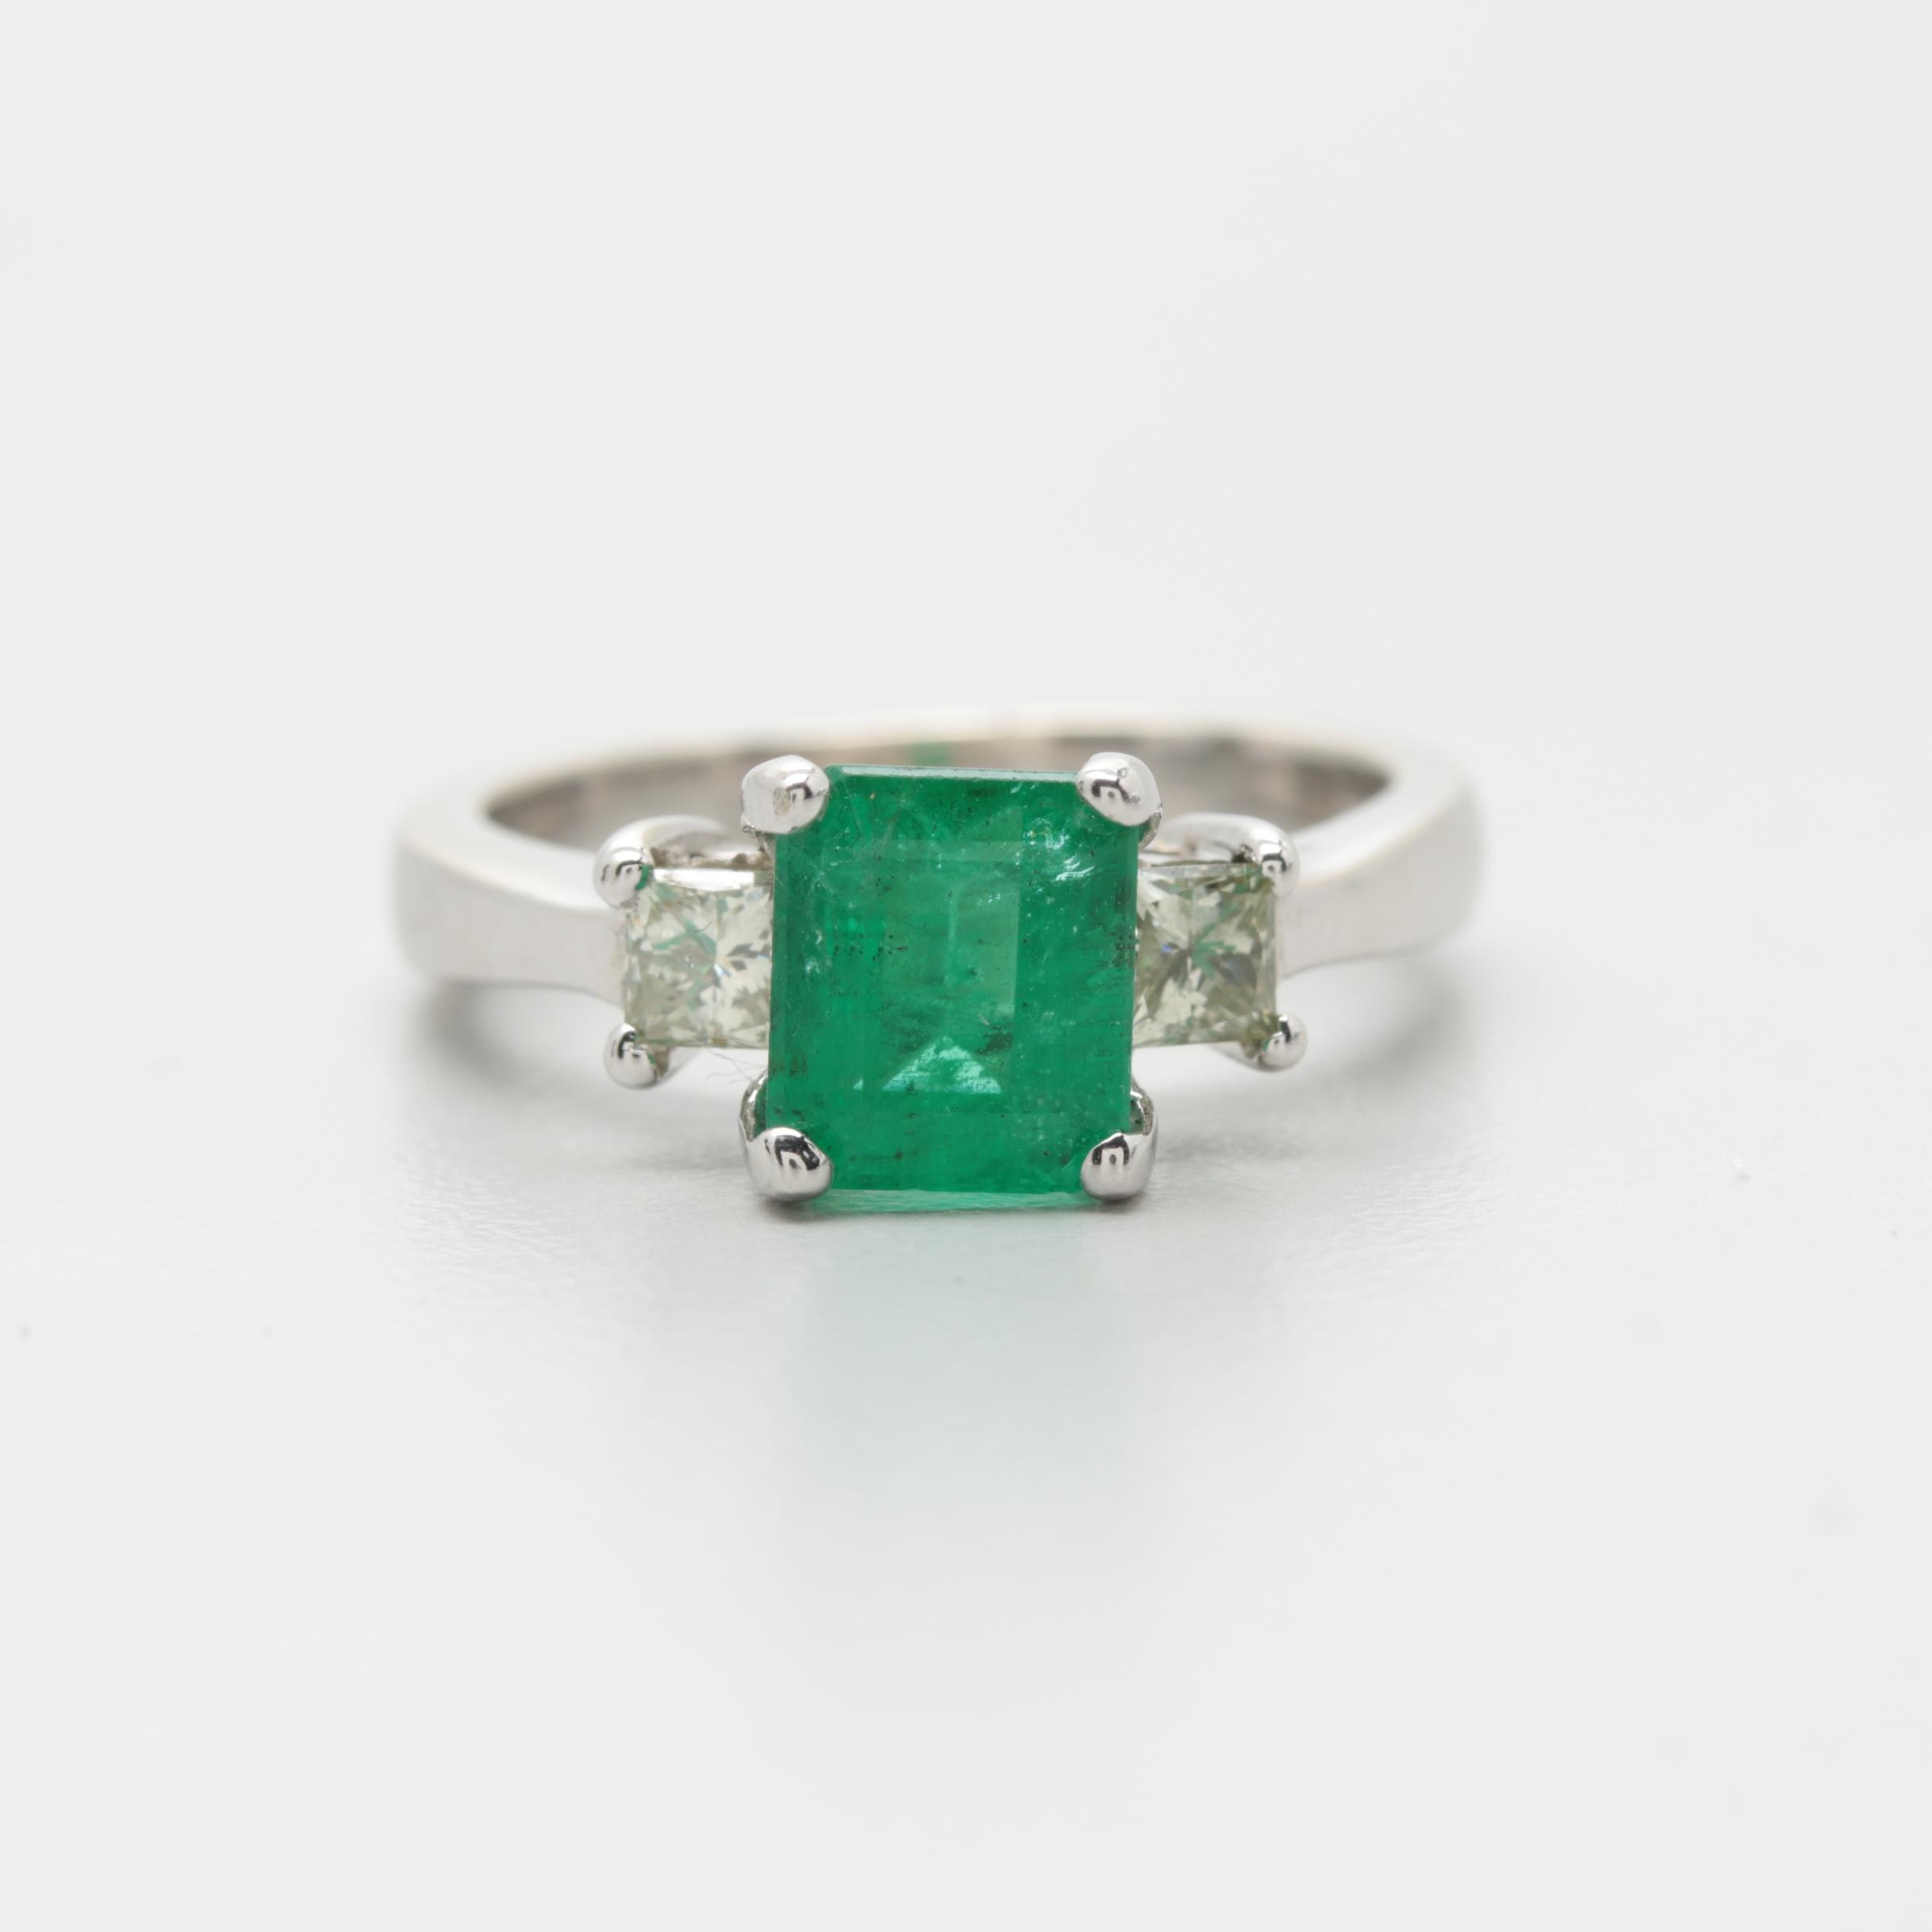 14K White Gold 1.63 CT Emerald and Diamond Ring